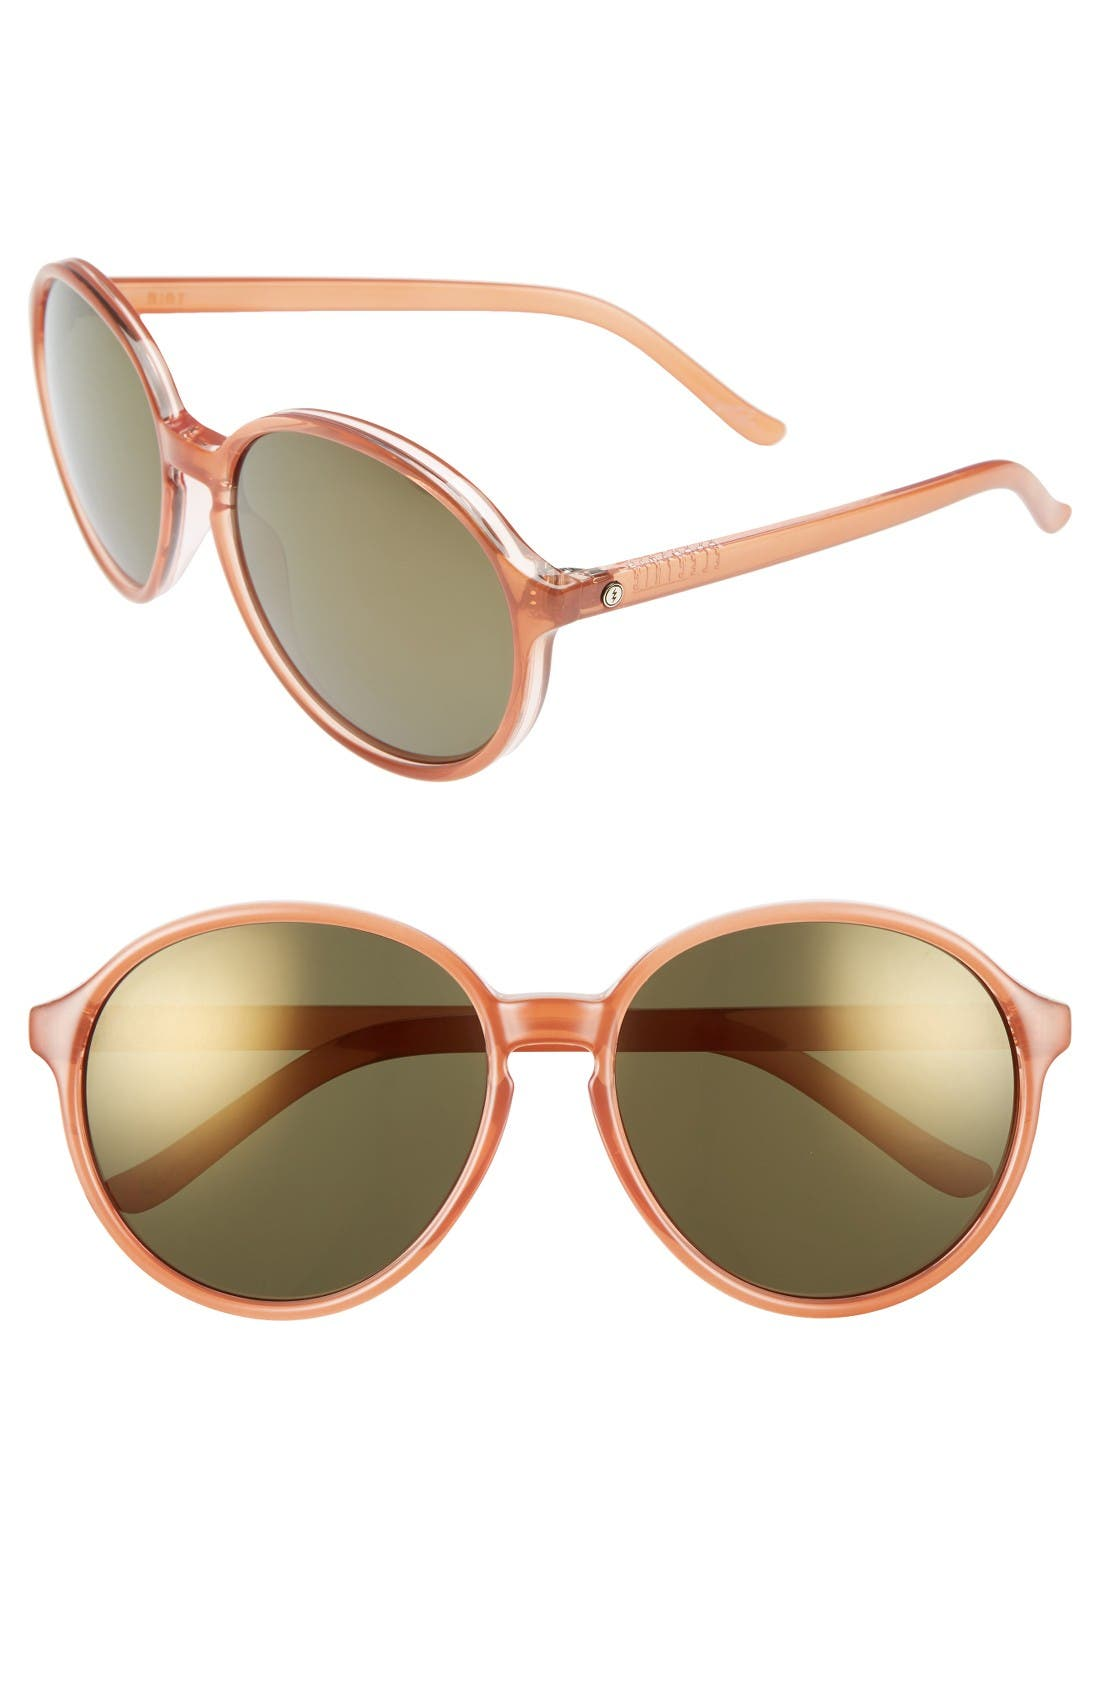 'Riot' 58mm Round Sunglasses,                             Main thumbnail 1, color,                             Calafia Rose/ Bronze Champagne